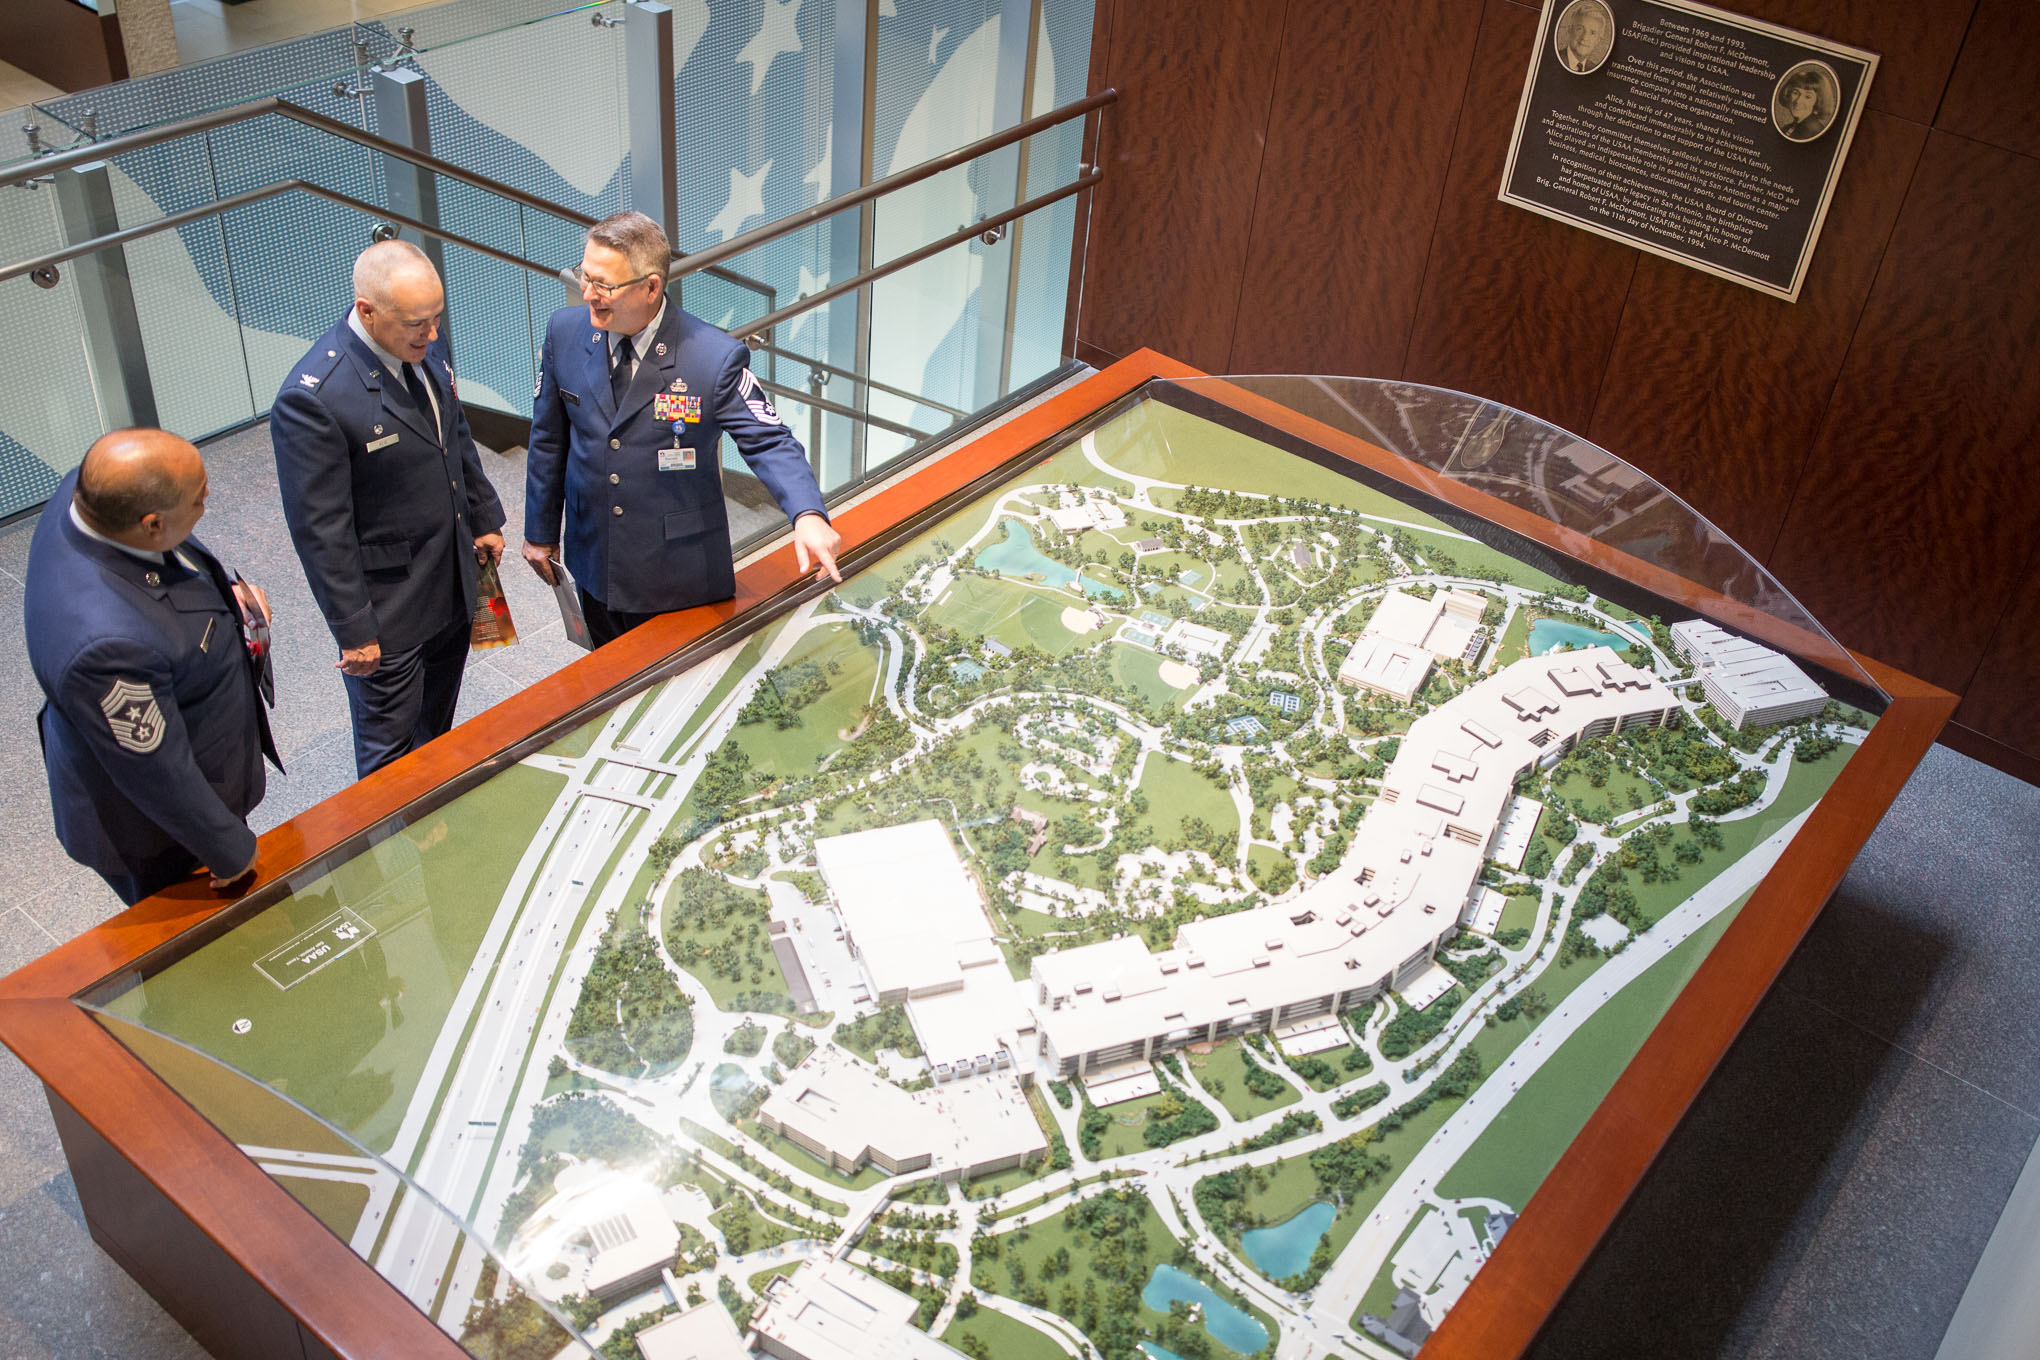 Members of the United States Air Force overlook a large model representing the USAA headquarters. Photo by Scott Ball.